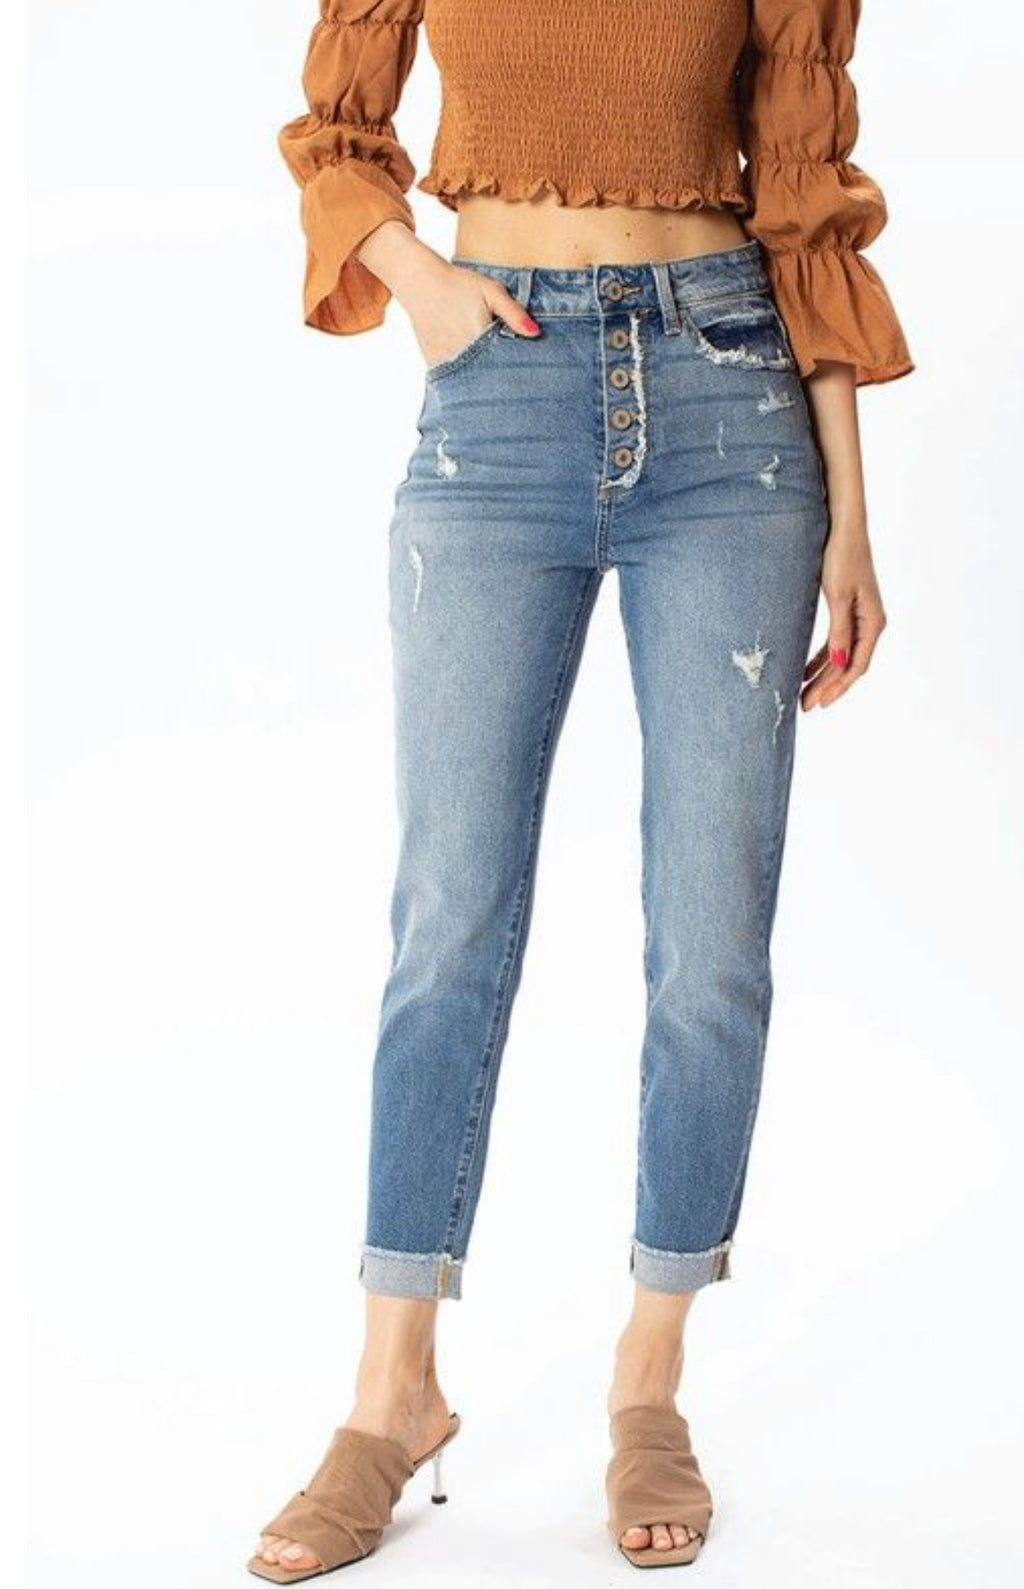 Libby Medium Wash Jeans